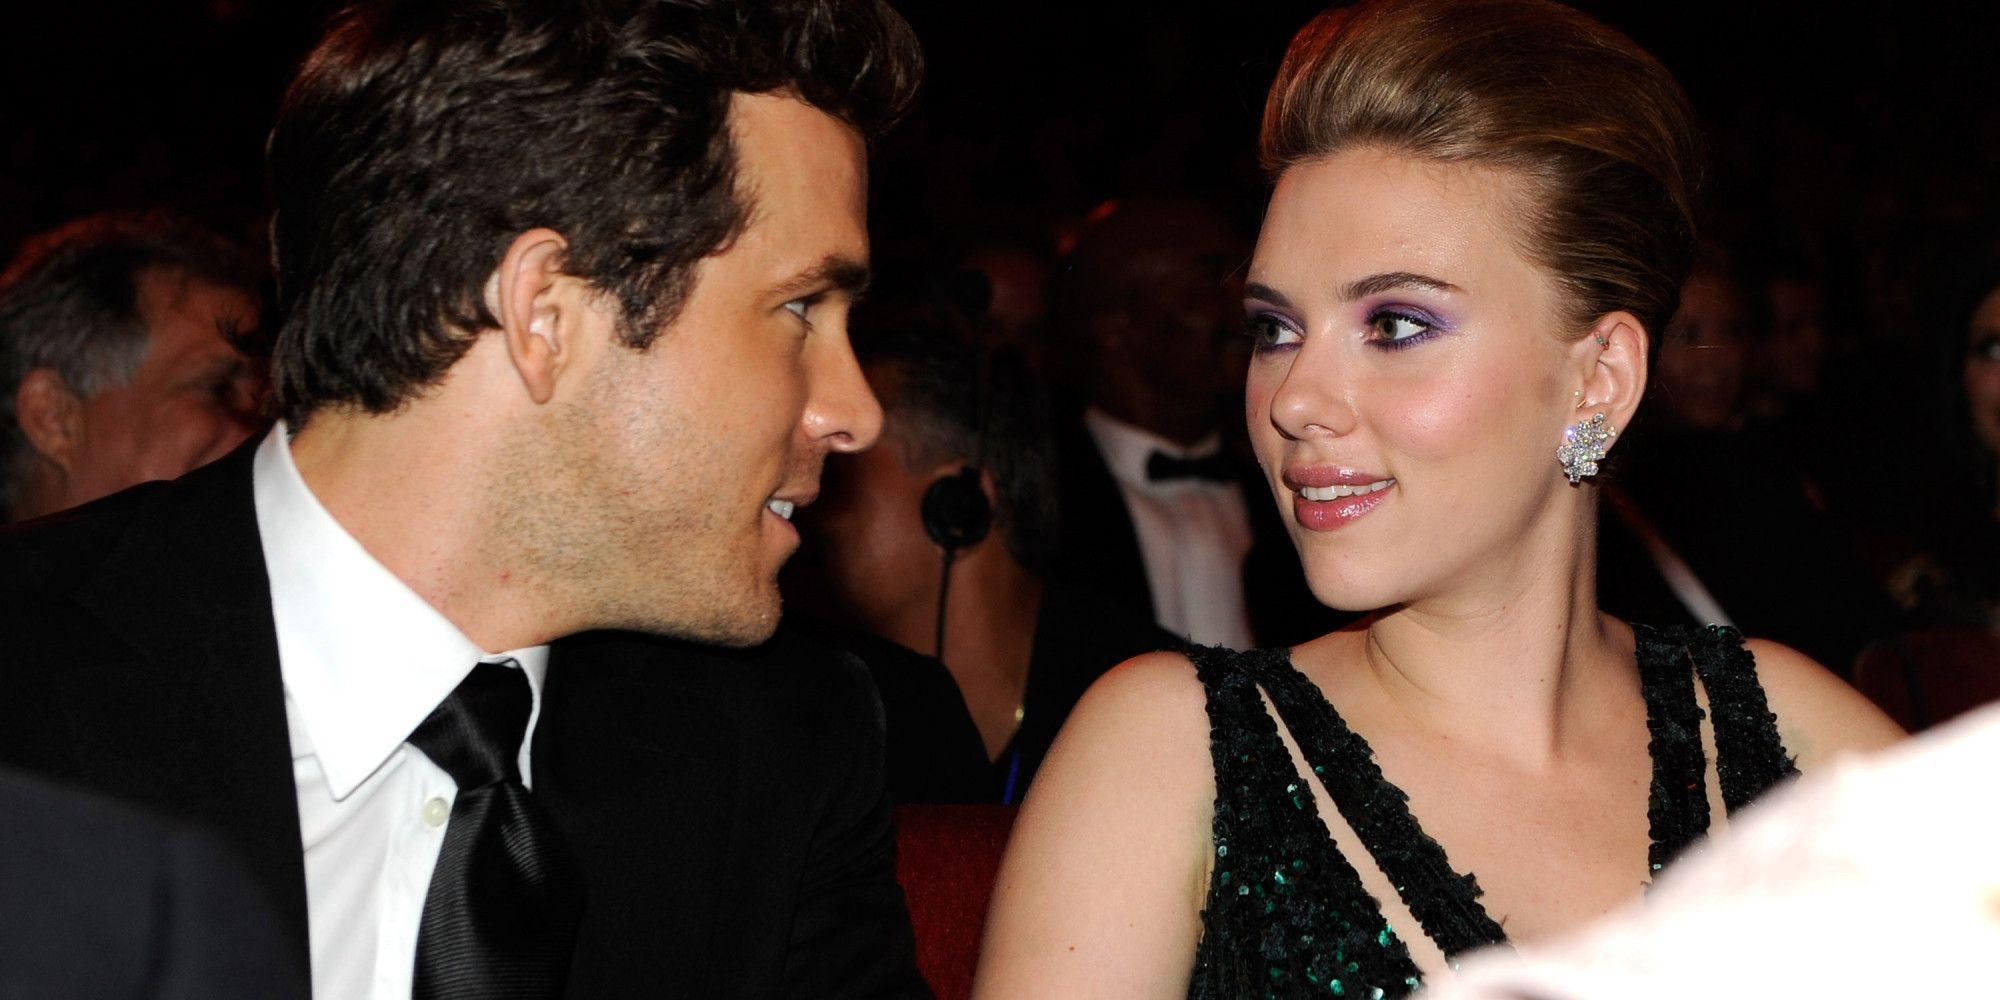 Scarlett Johansson Opens Up About Divorce From Ryan